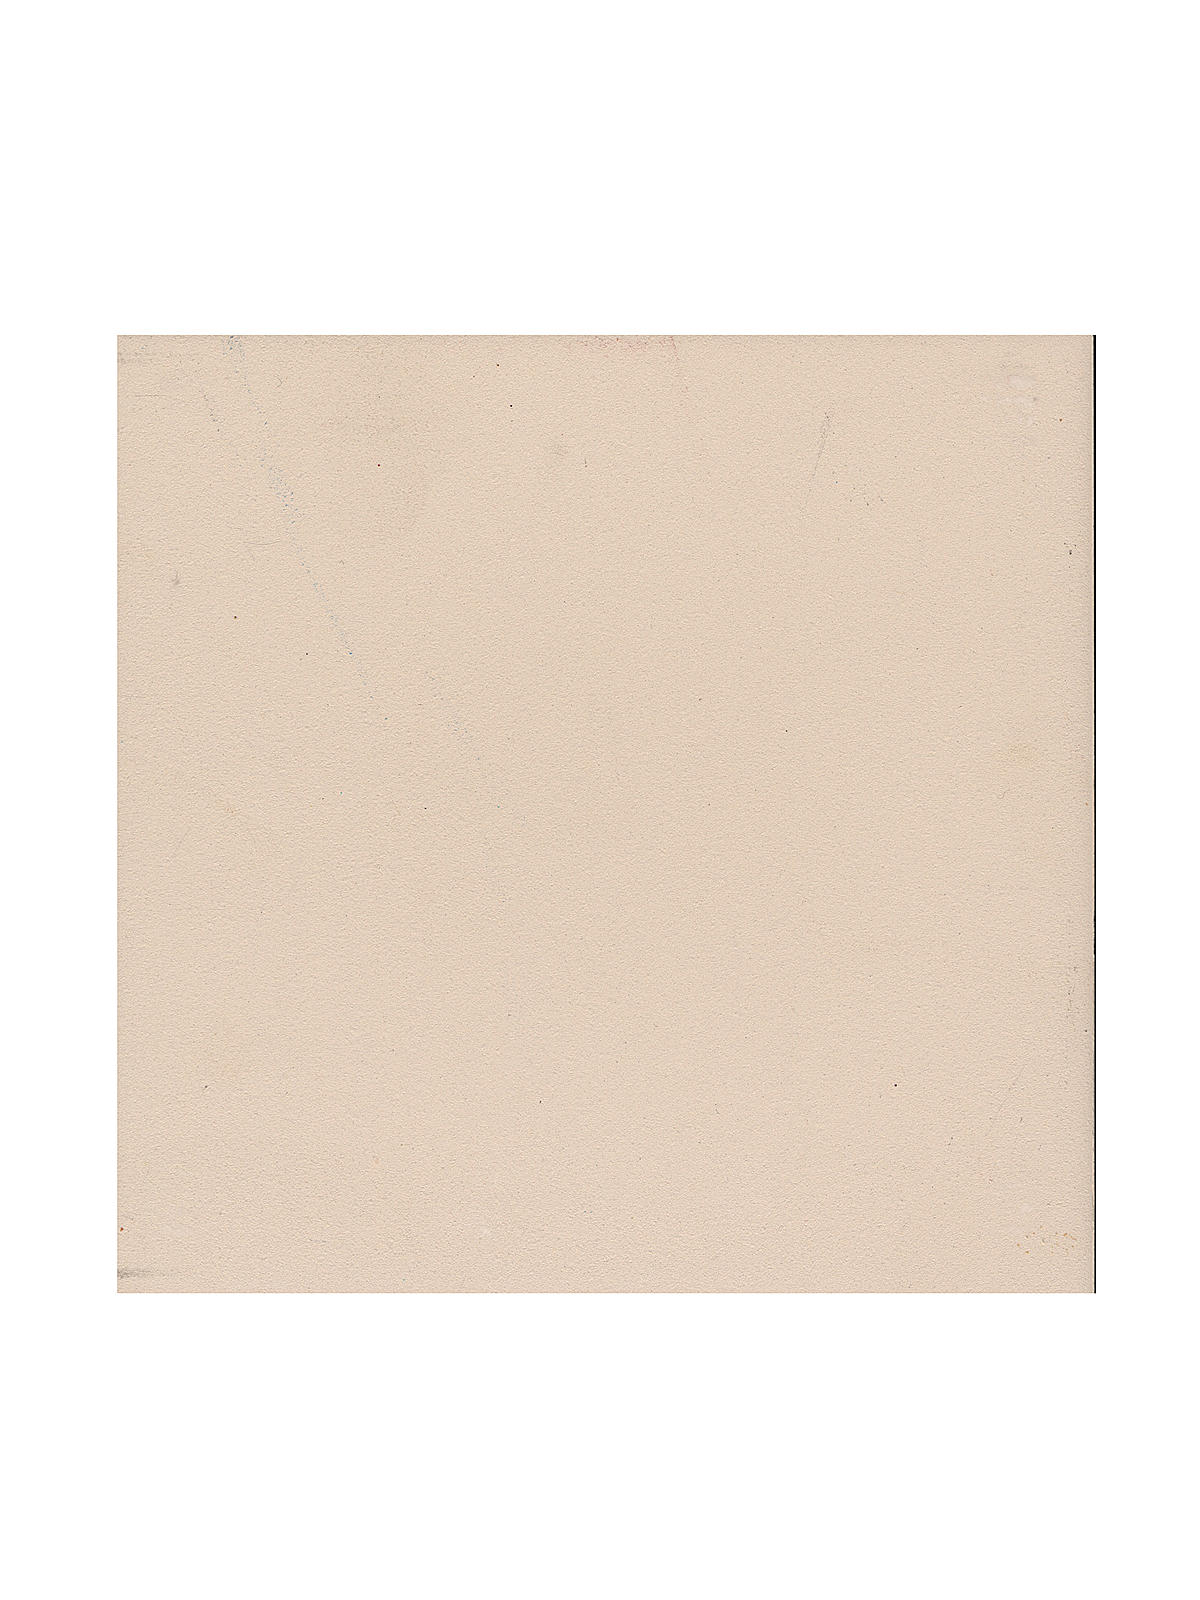 National artcraft bisque tile misterart bisque tile square 6 in x 6 in dailygadgetfo Gallery